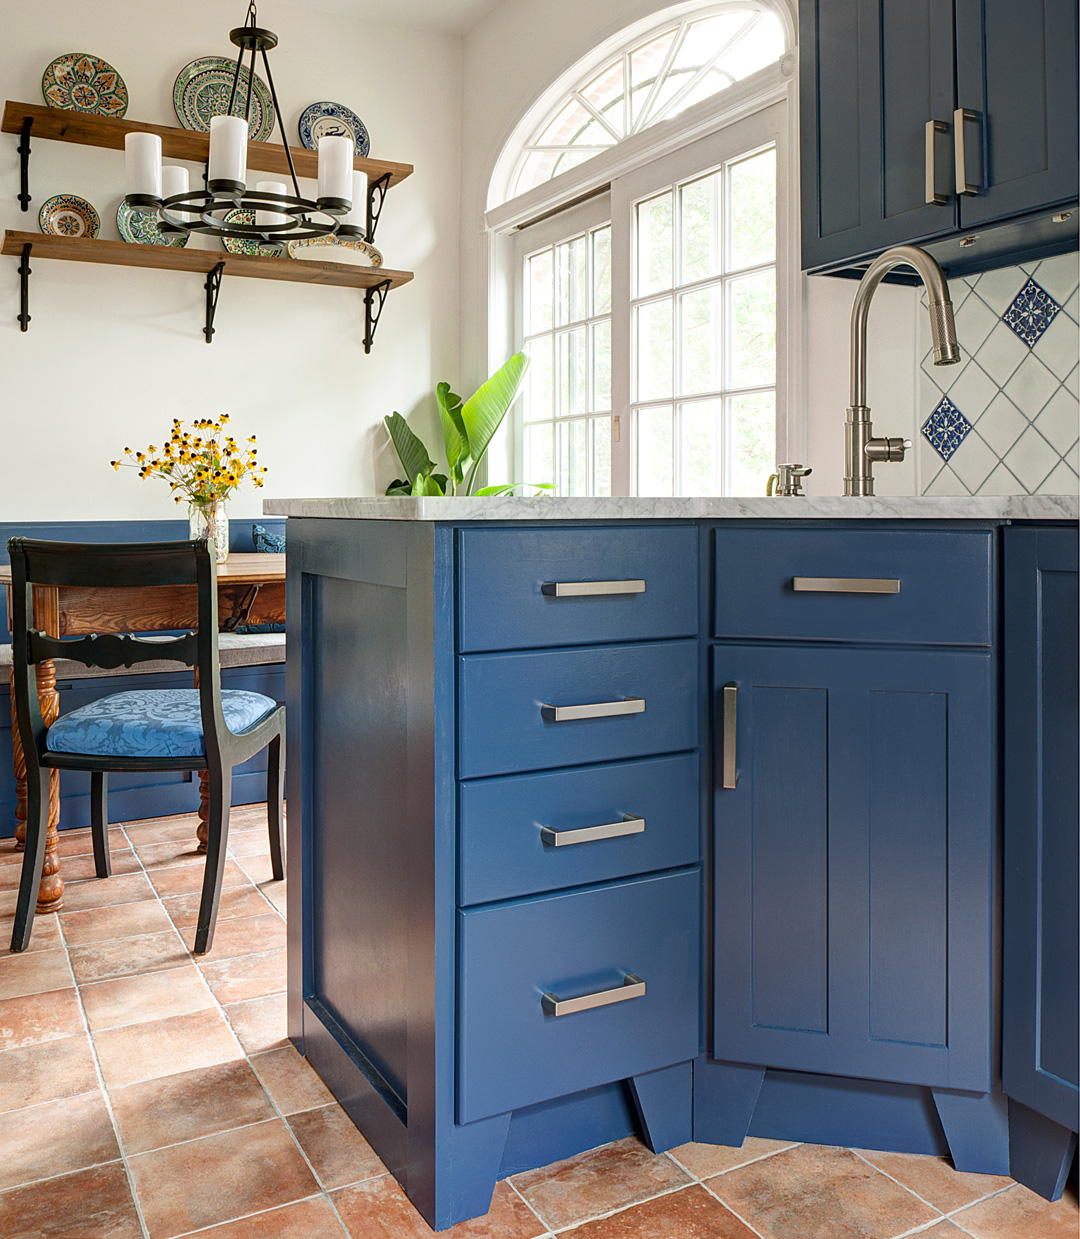 Large cabinet pulls are easy to grip. See more of this  kitchen here .